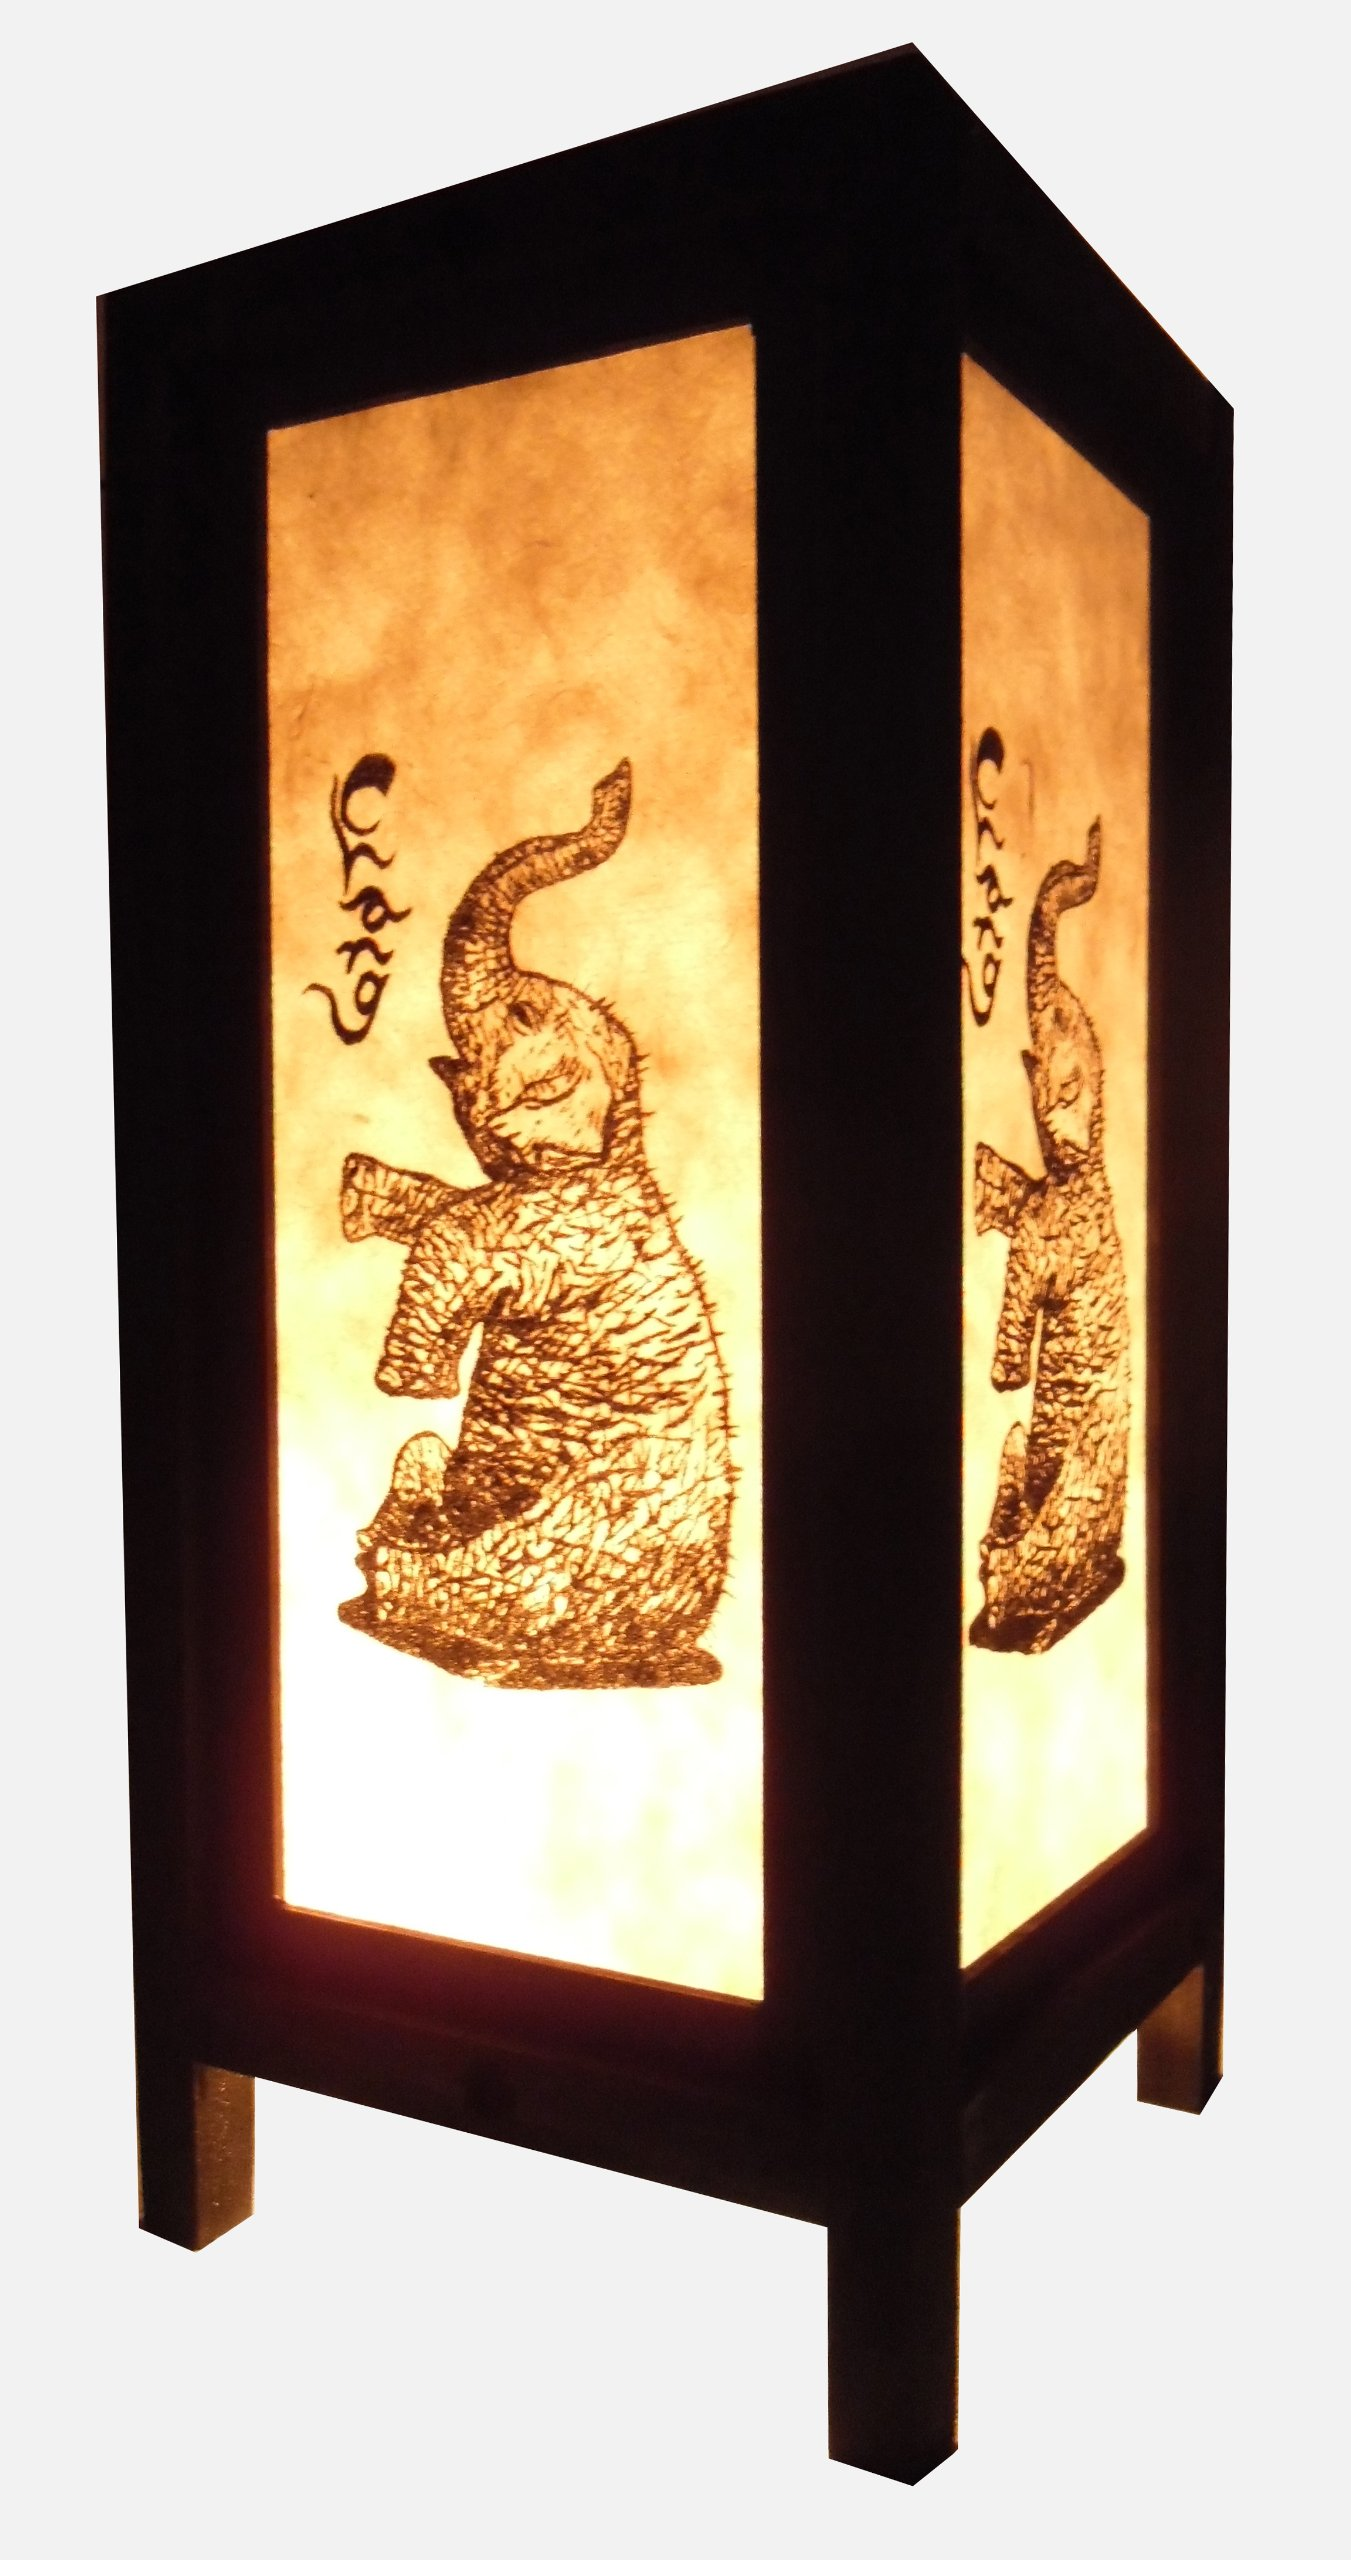 Thai Vintage Handmade Asian Oriental Elephant Bedside Table Light or Floor Wood Paper Lamp Shades Home Bedroom Garden Decor Modern Design from Thailand by Red berry Thailand Lanna Lamp